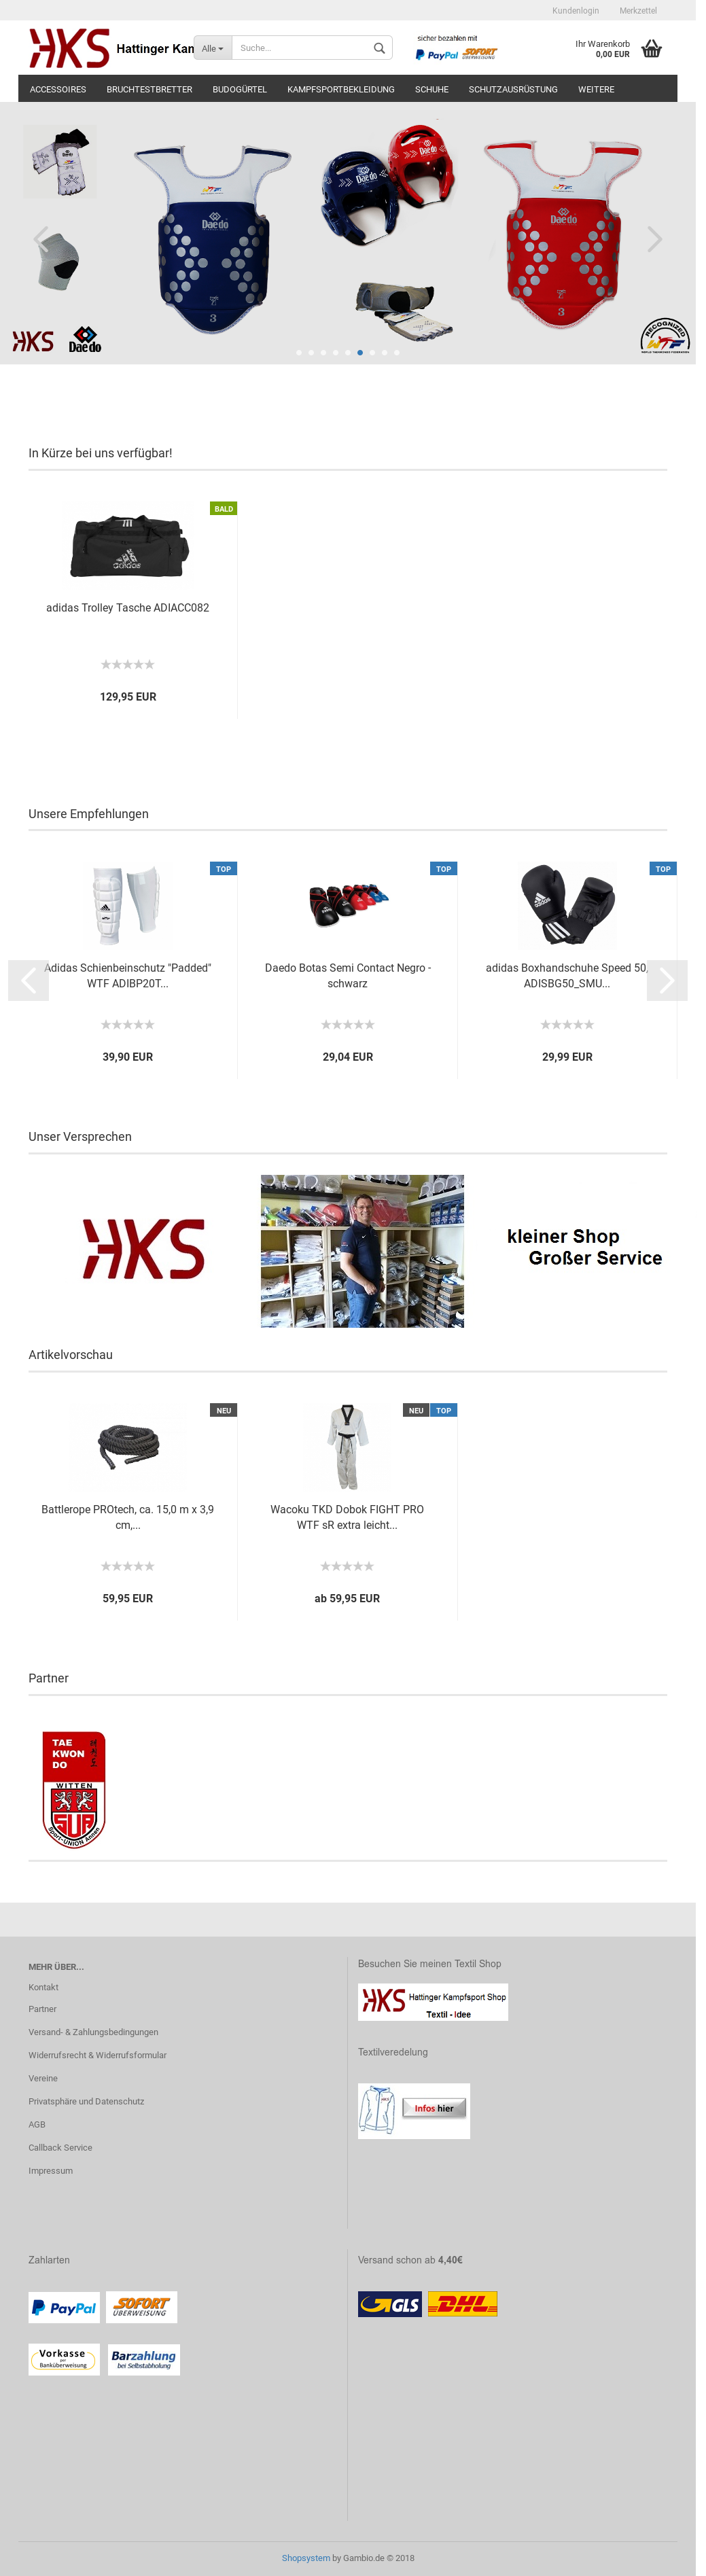 Hattinger Kampfsport shop Competitors, Revenue and Employees